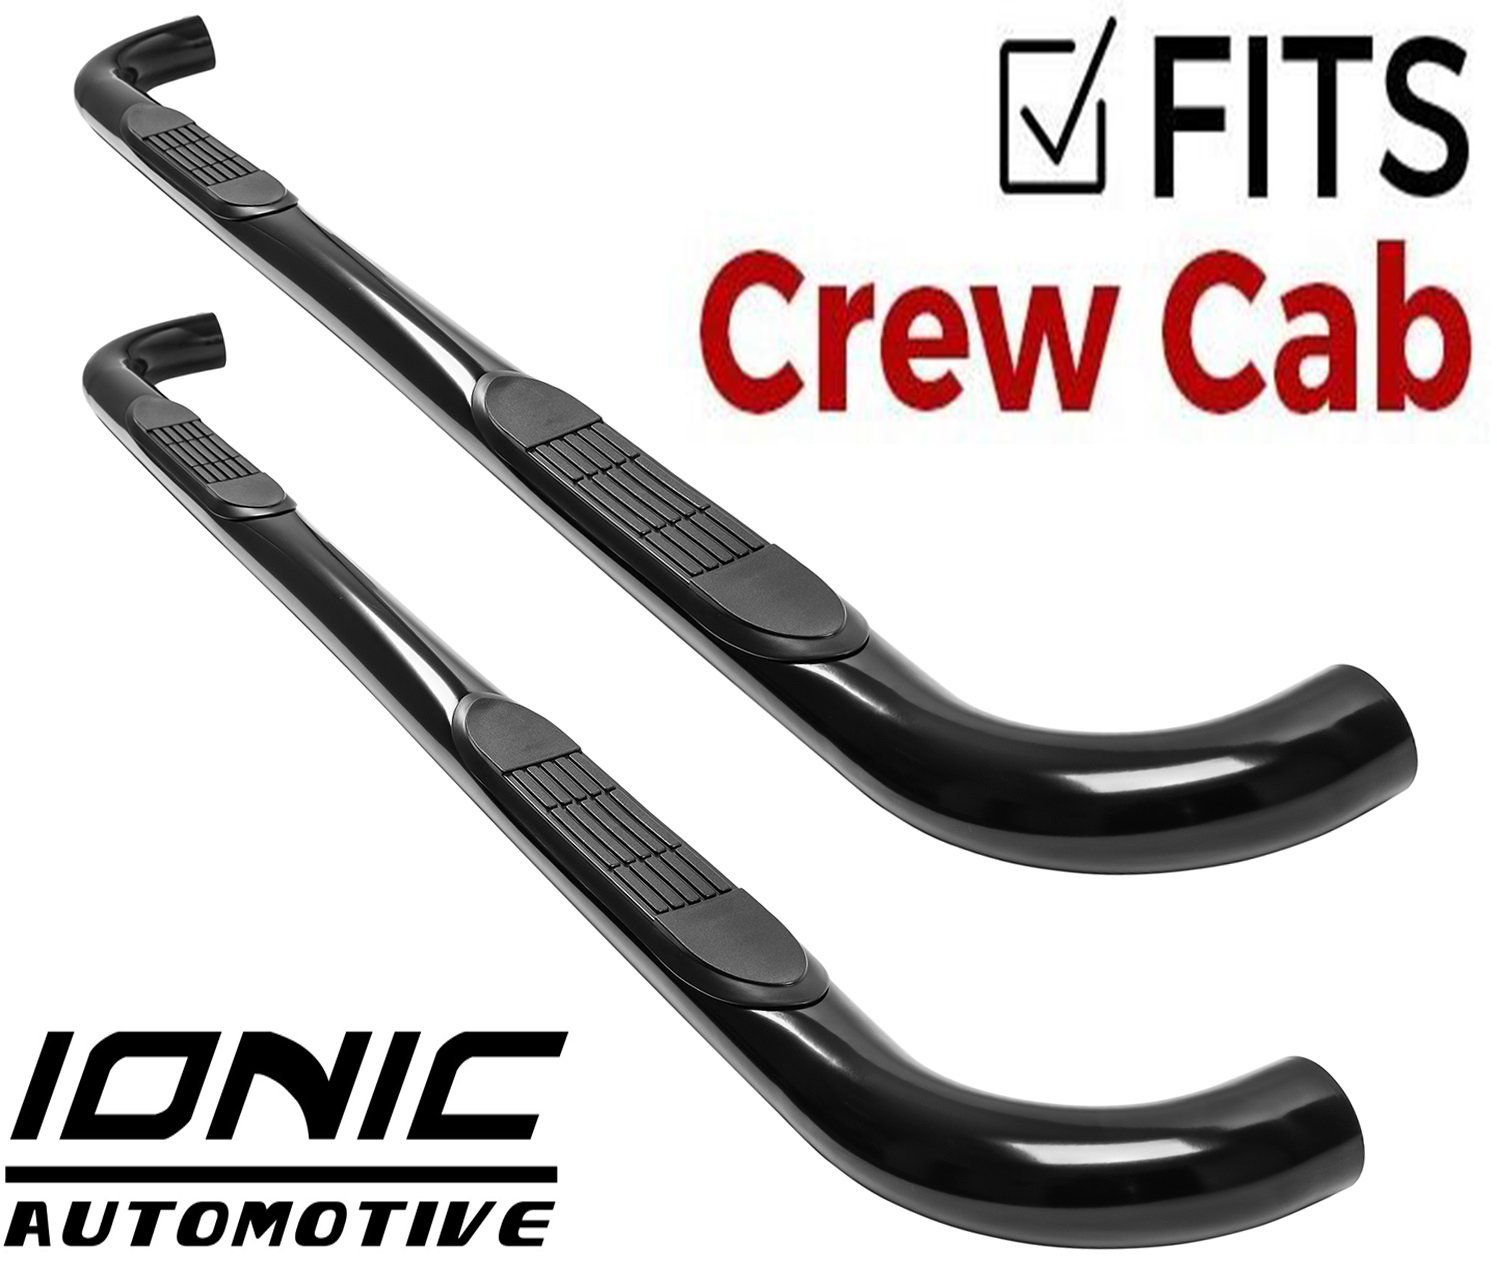 310309 fits 2001-2016 Chevy Silverado GMC Sierra Crew Cab Body Mount Only Nerf Bars Truck Side Steps Ionic Pro Series 3 Black